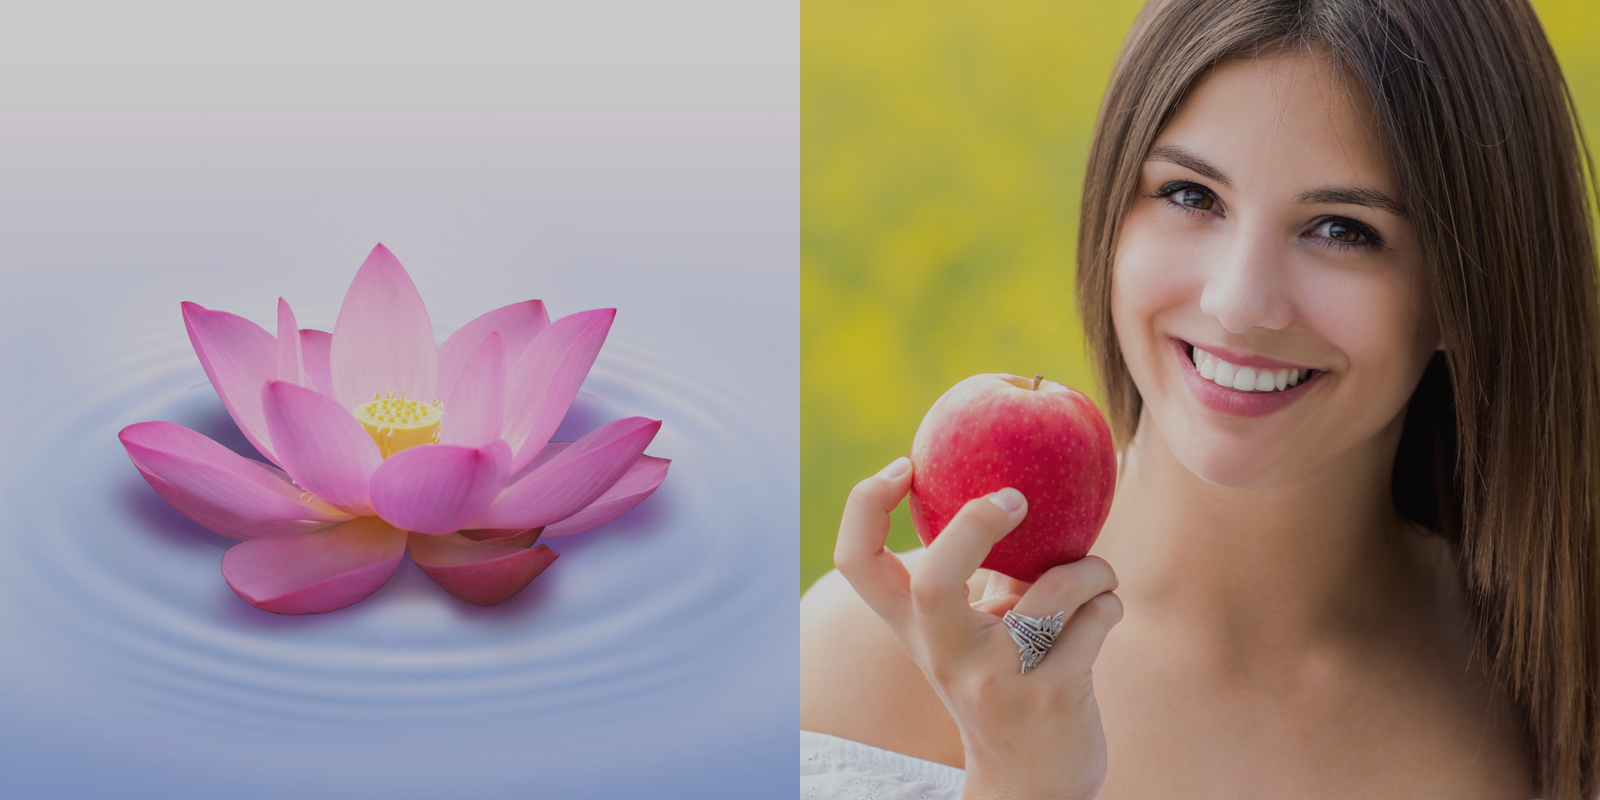 Dental spa services in Clearwater, FL for a relaxing visit